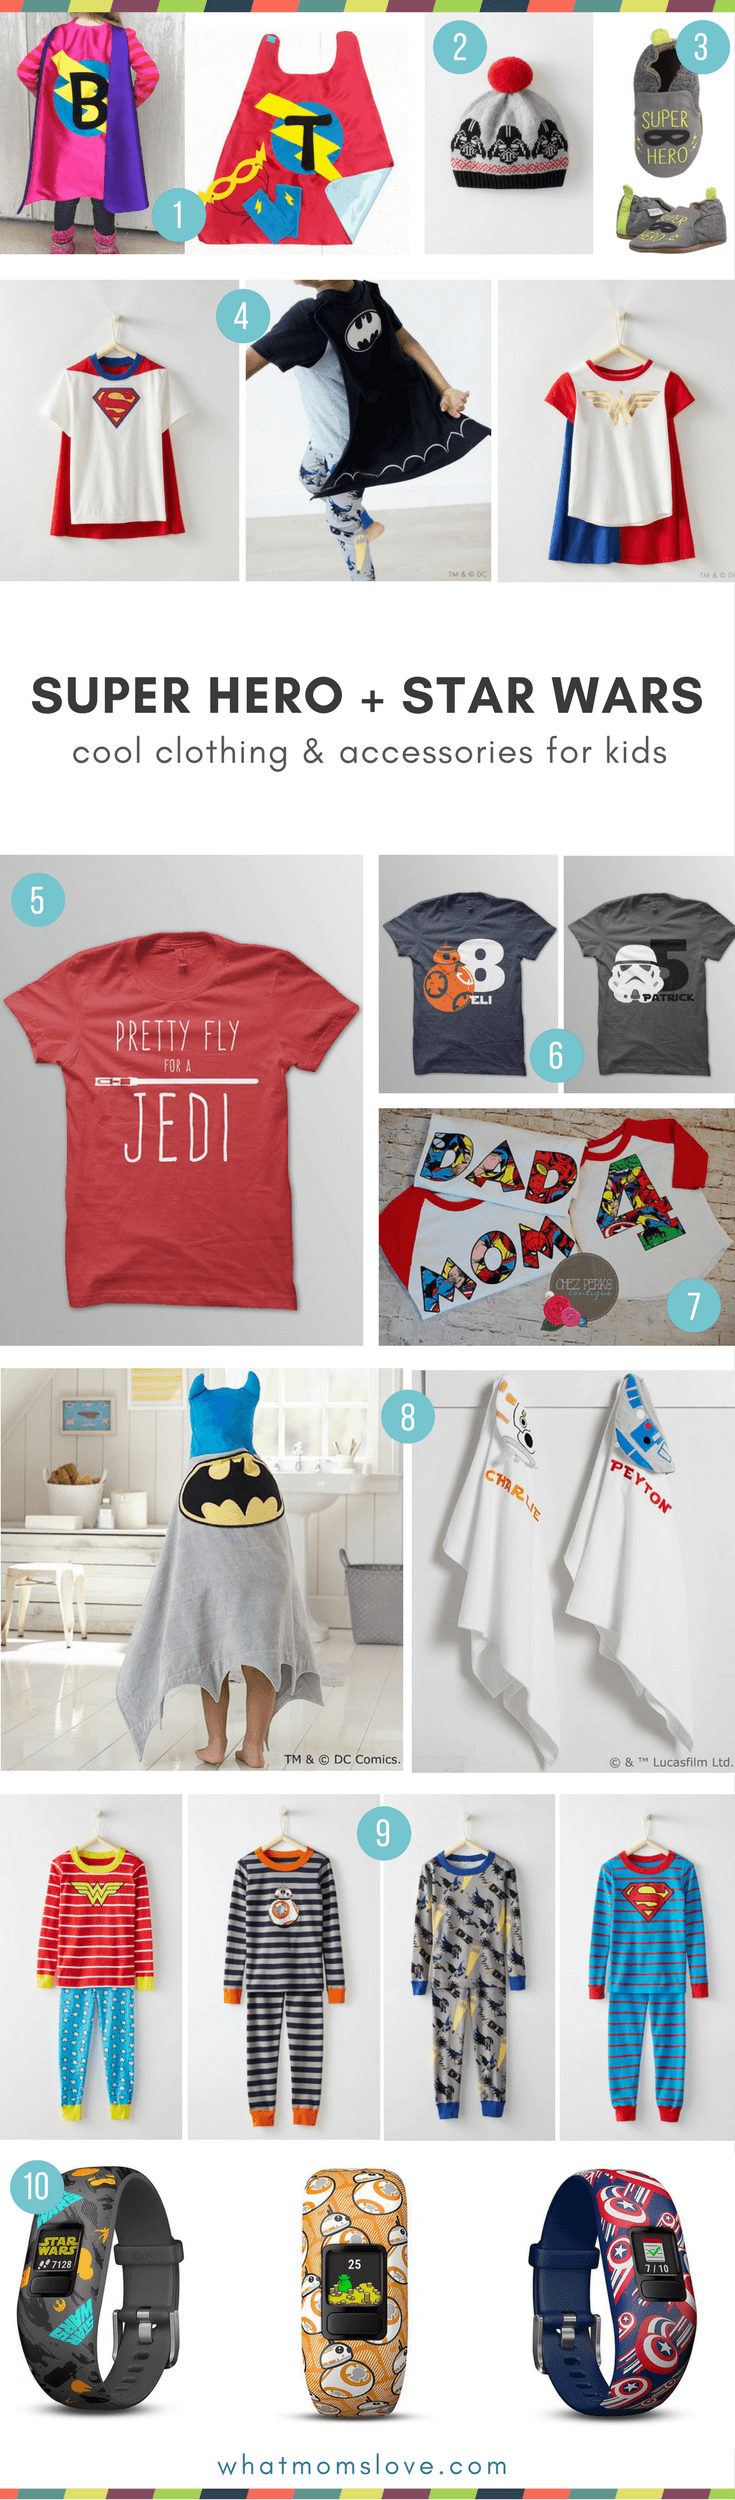 Gift Guide The Best Gift Ideas For Superhero Star Wars Lovers